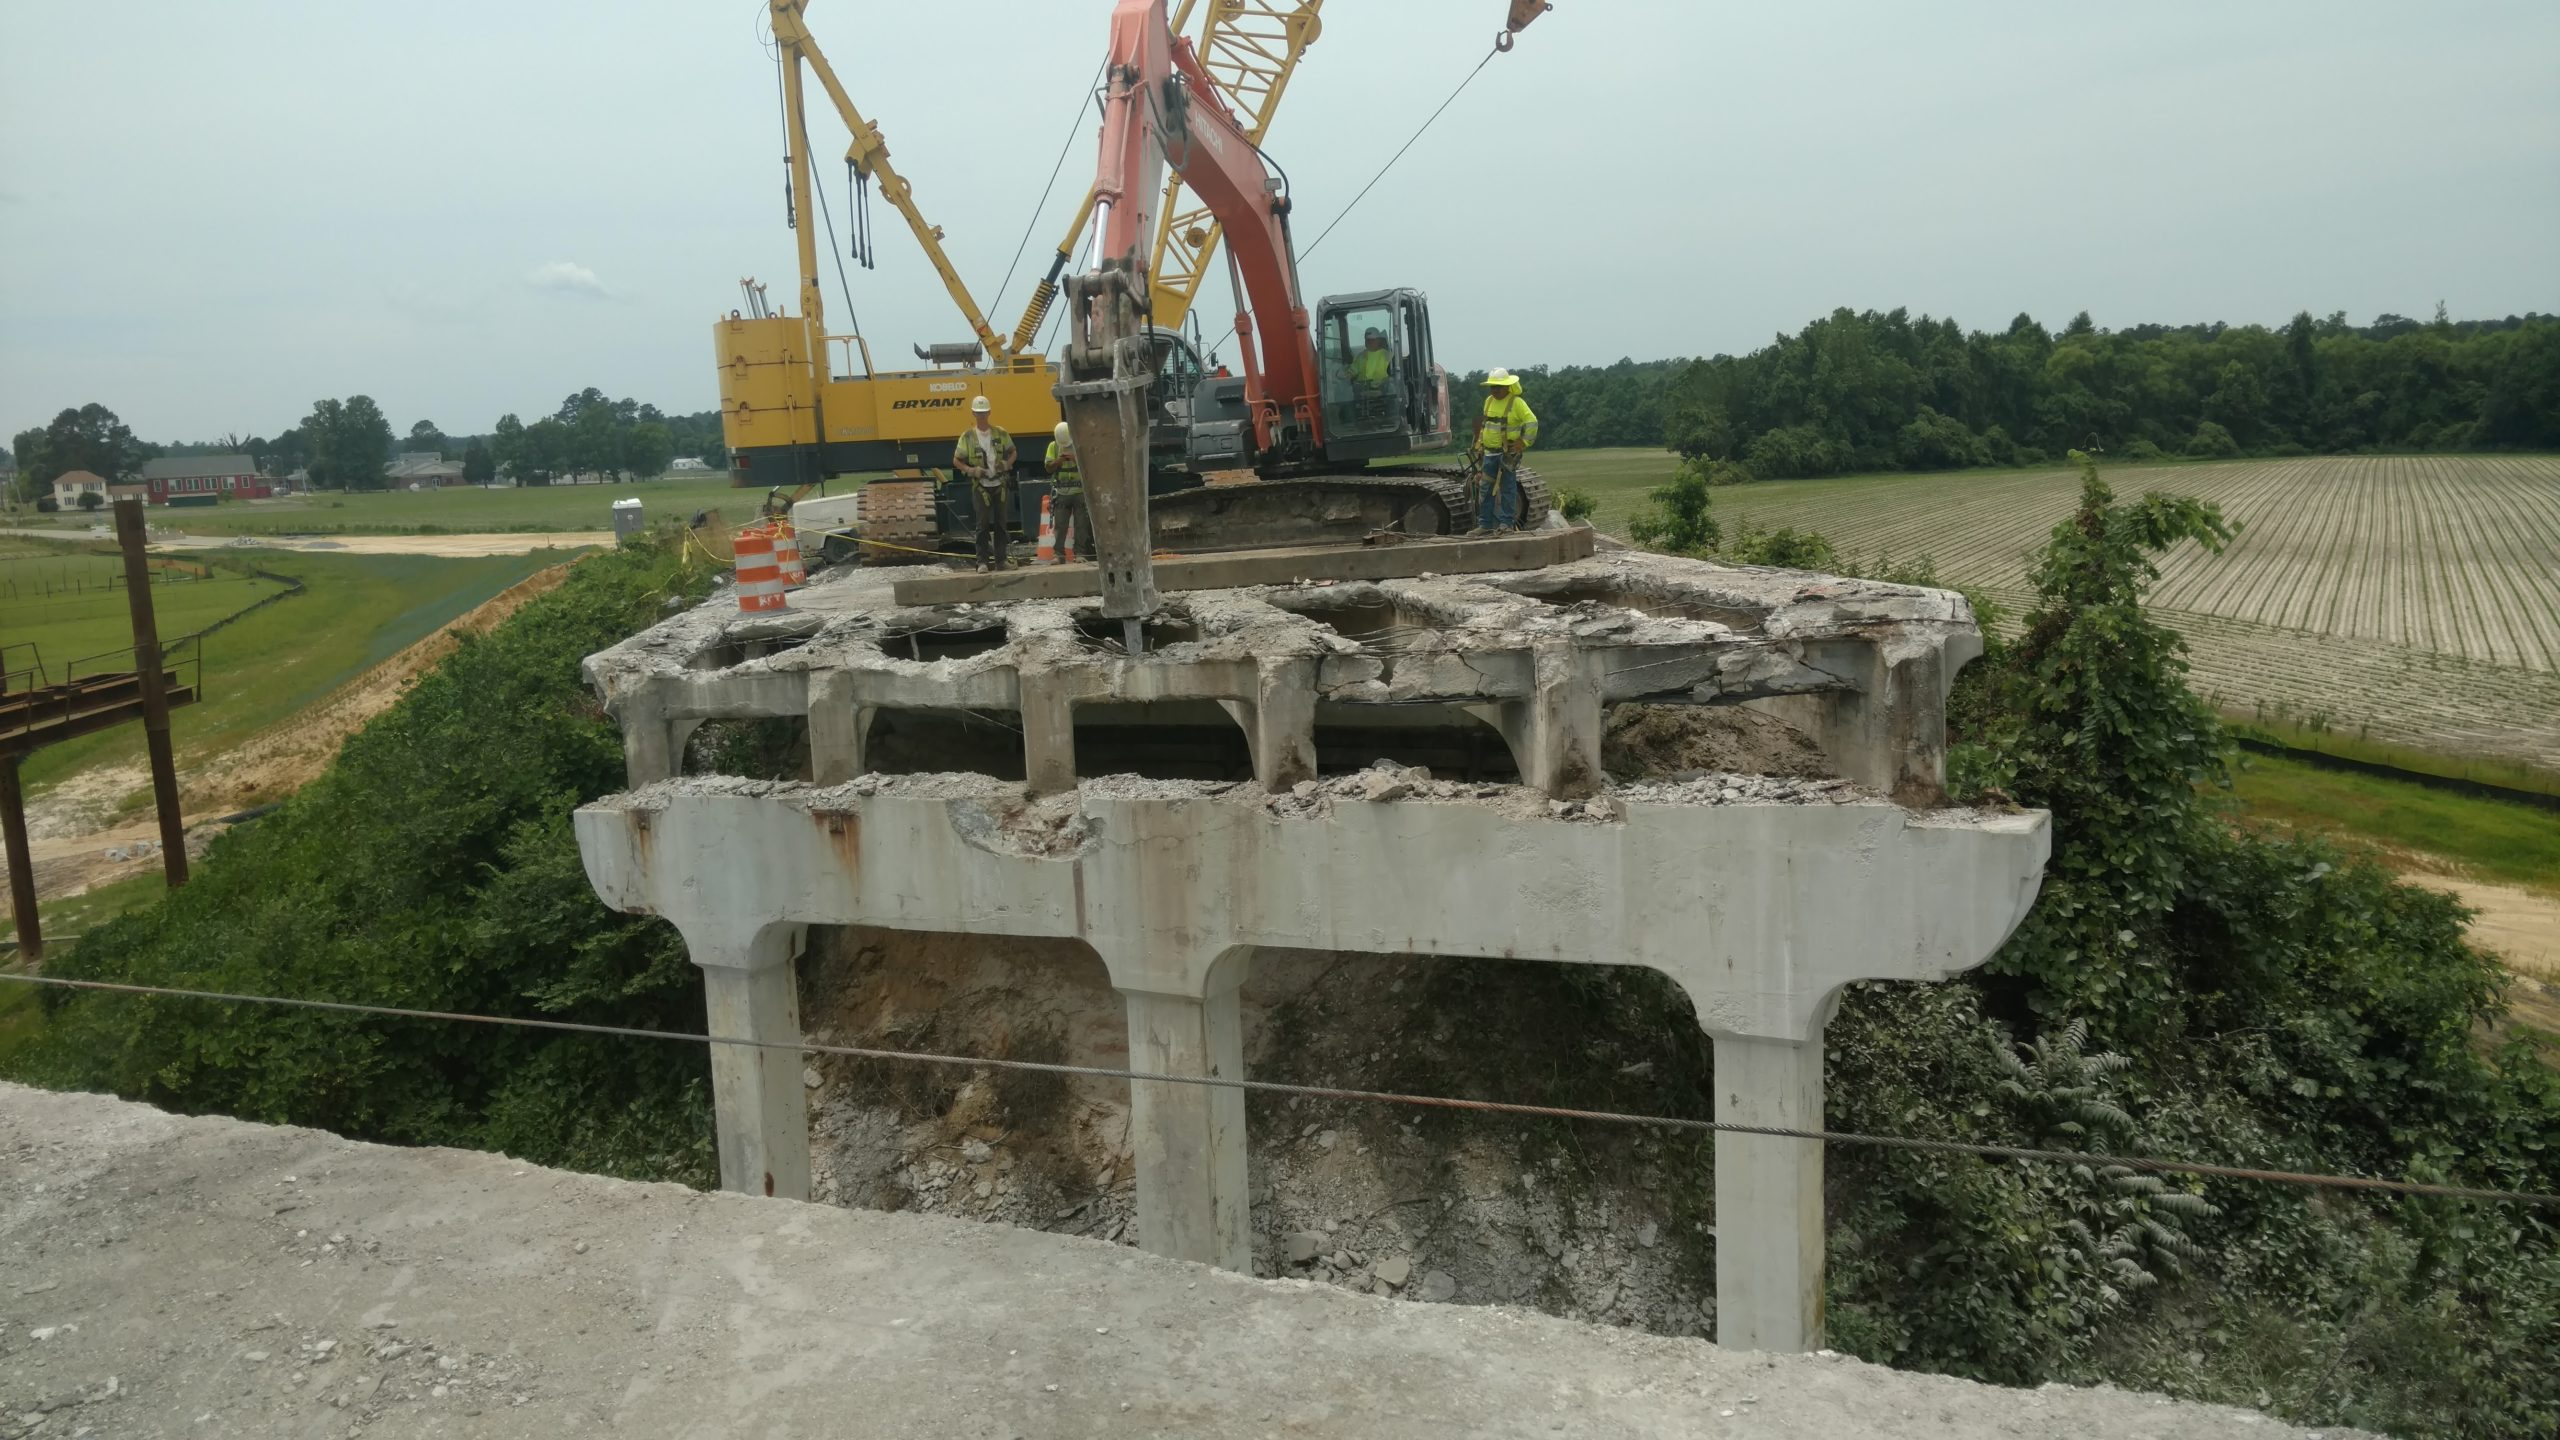 Demolition of existing bridge deck with Hitachi excavator and hoe ram attachment